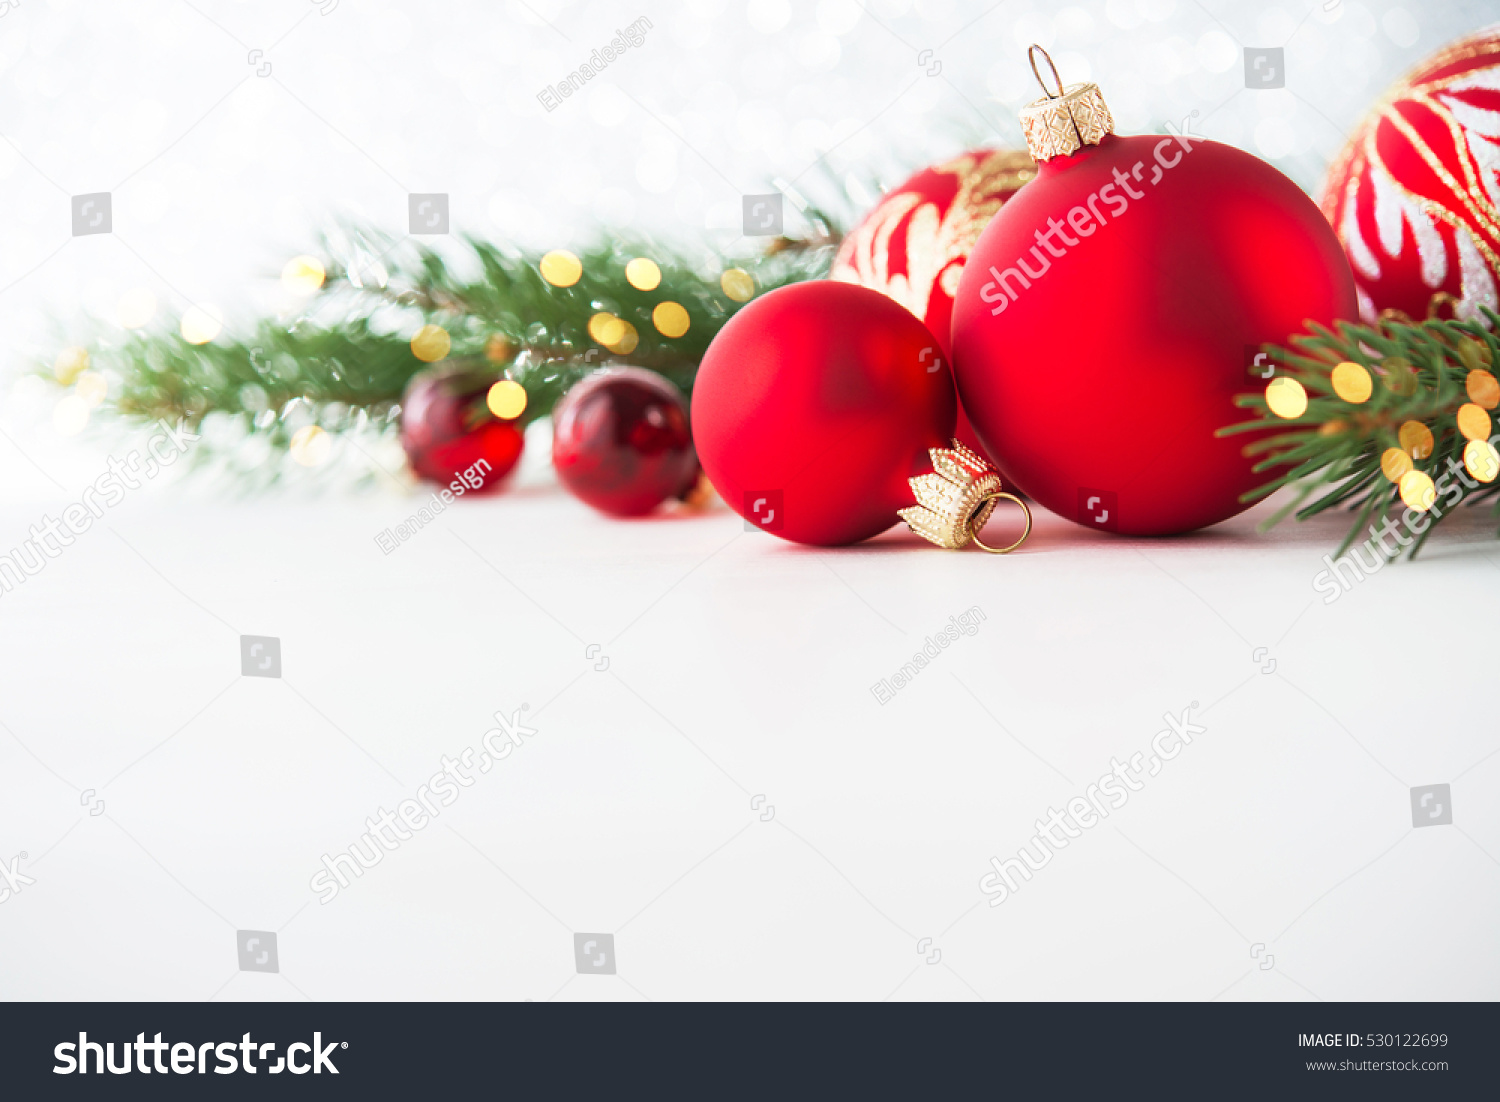 Red Christmas Ornaments On White Background Stock Photo (Edit Now ...